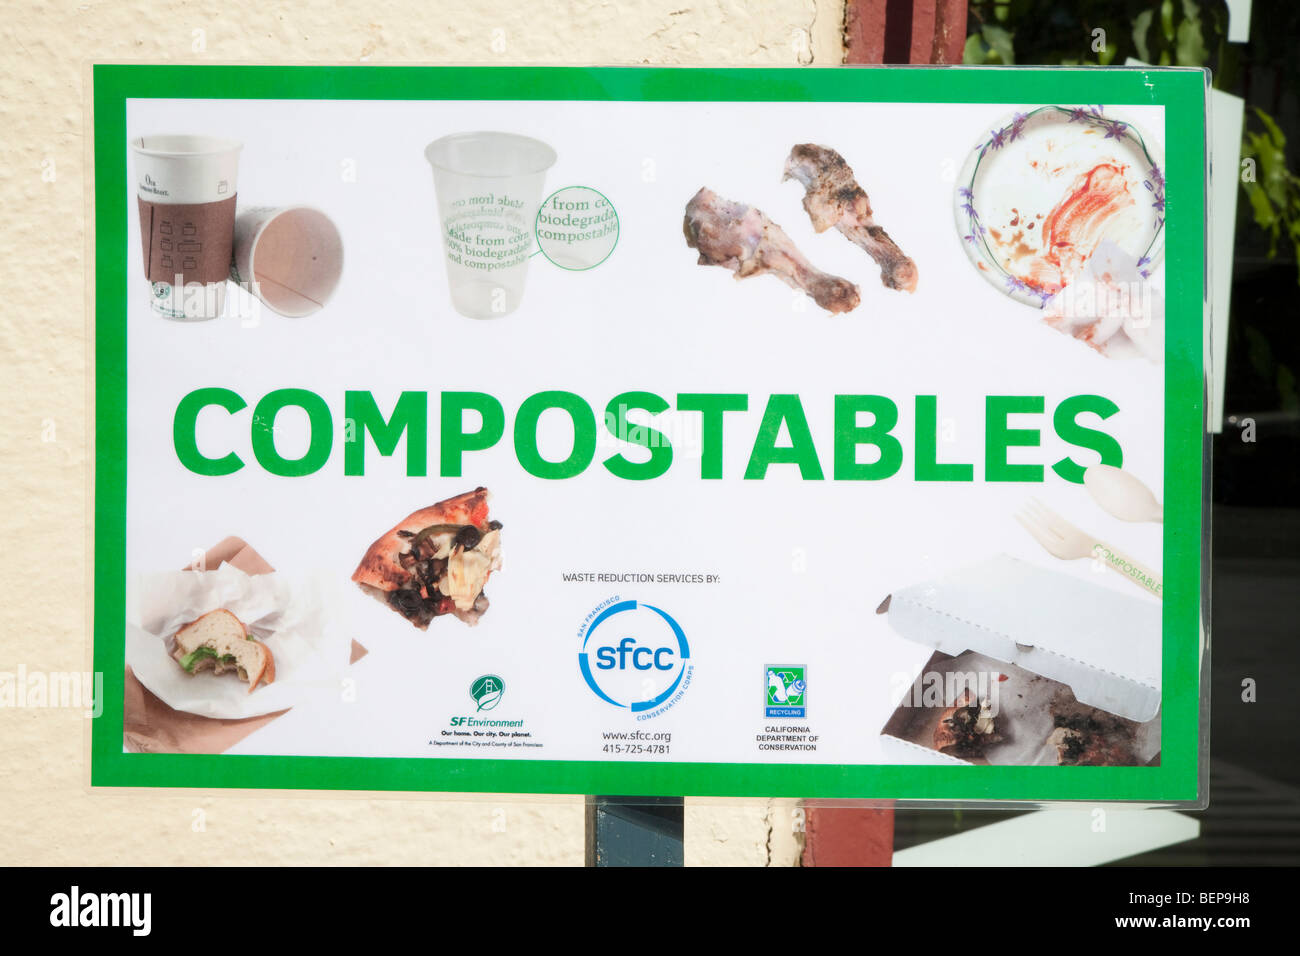 Compostables  composting sign showing recyclable materials - food waste paper cups bio plastics paper plates etc.  sc 1 st  Alamy & Compostables